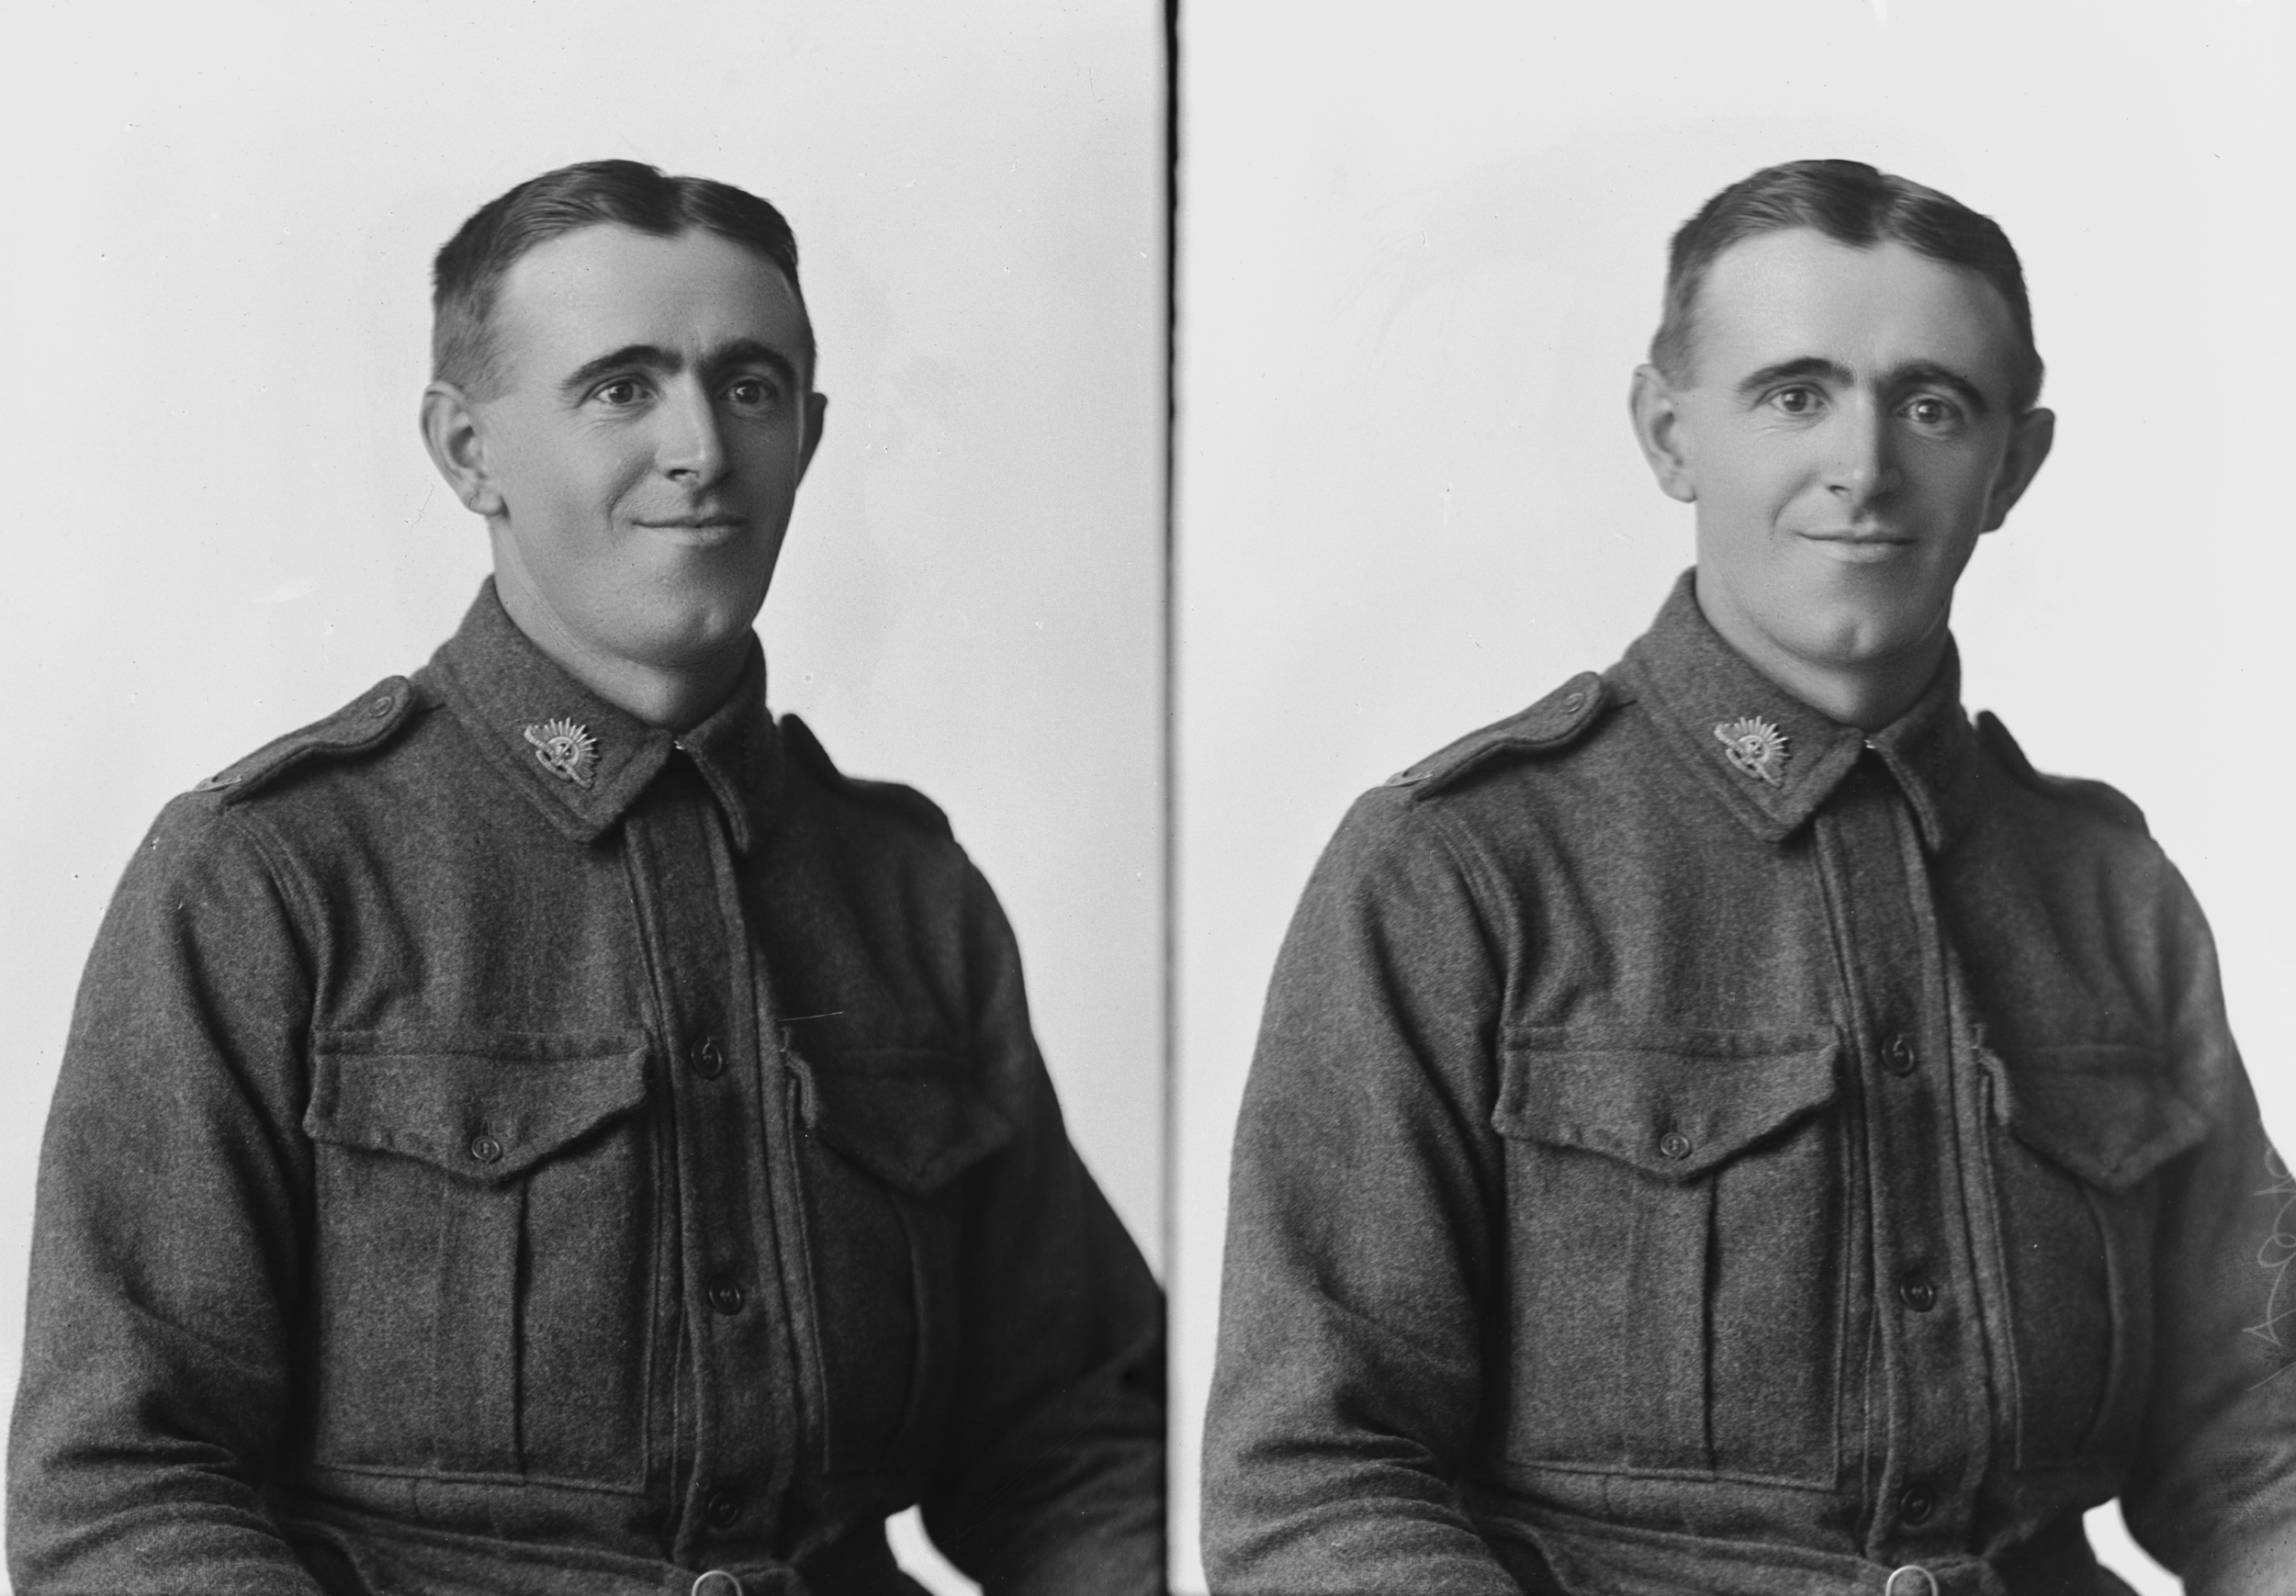 Photographed at the Dease Studio, 117 Barrack Street Perth WA Image courtesy of the State Library of Western Australia: 108375PD